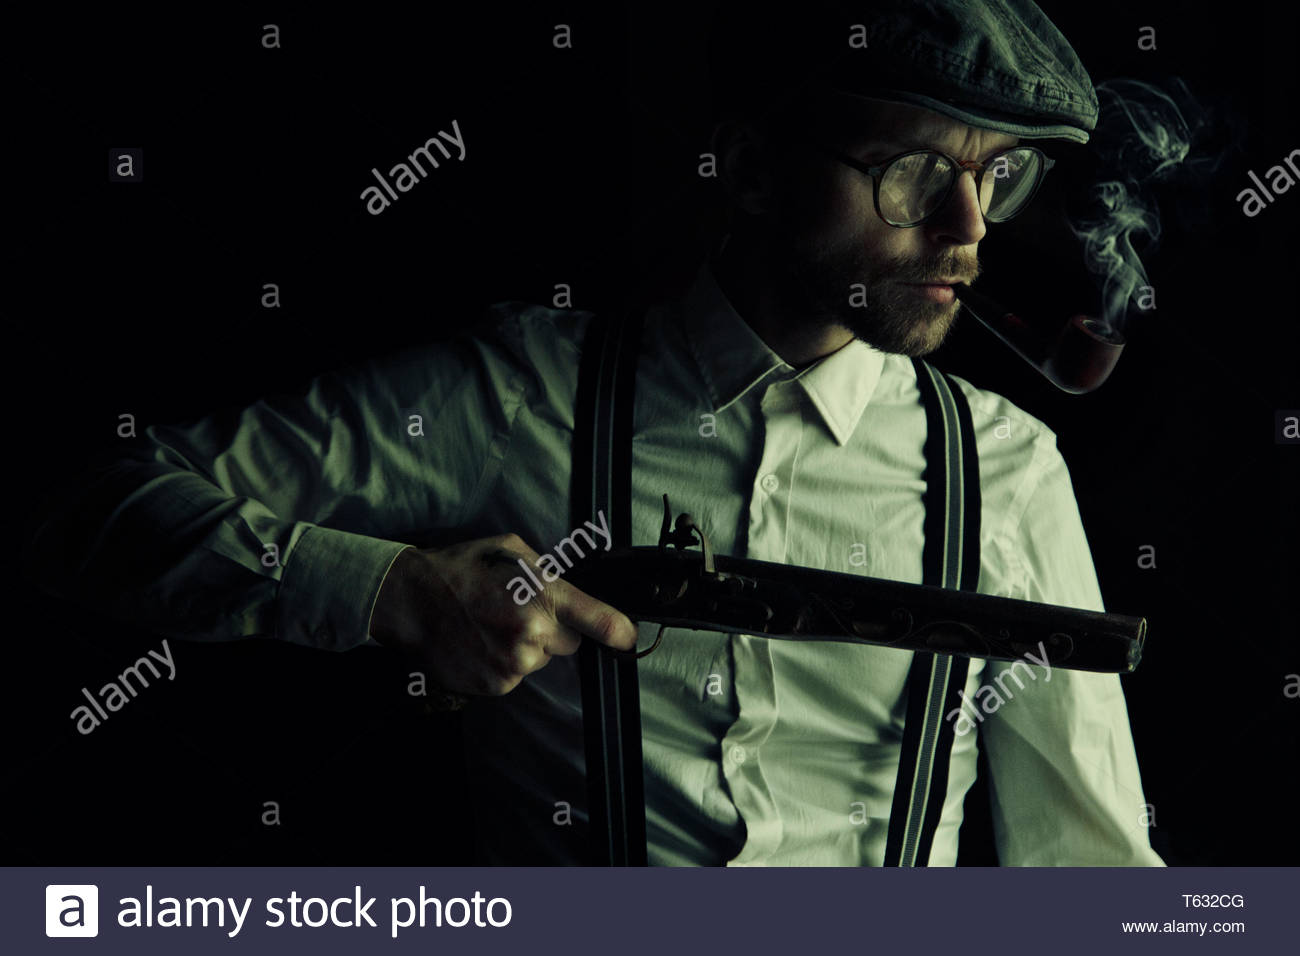 Old fashioned man with weapon in hand,  smoking pipe tobacco, wearing glasses, hat and braces - Stock Image